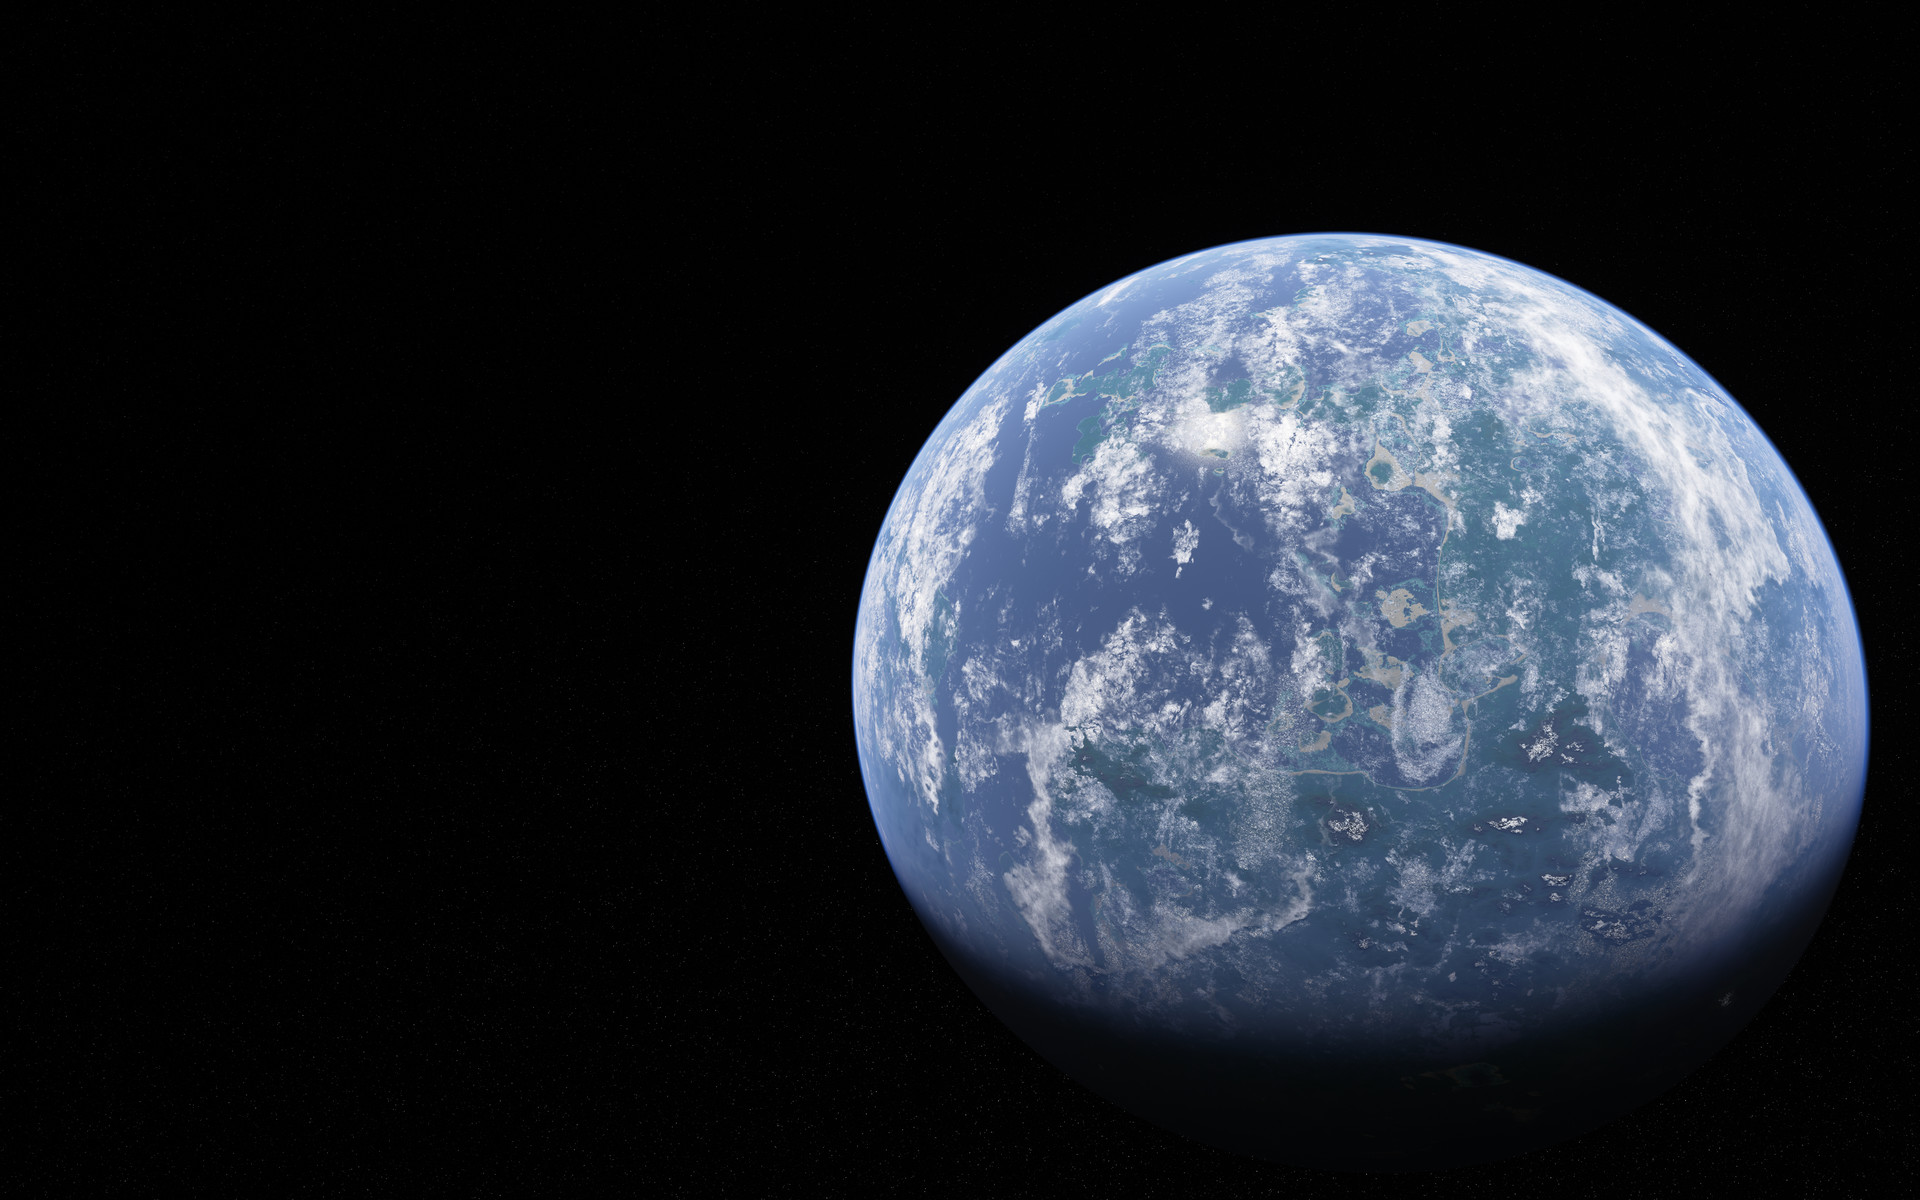 Earthlike exoplanet in gibbous phase